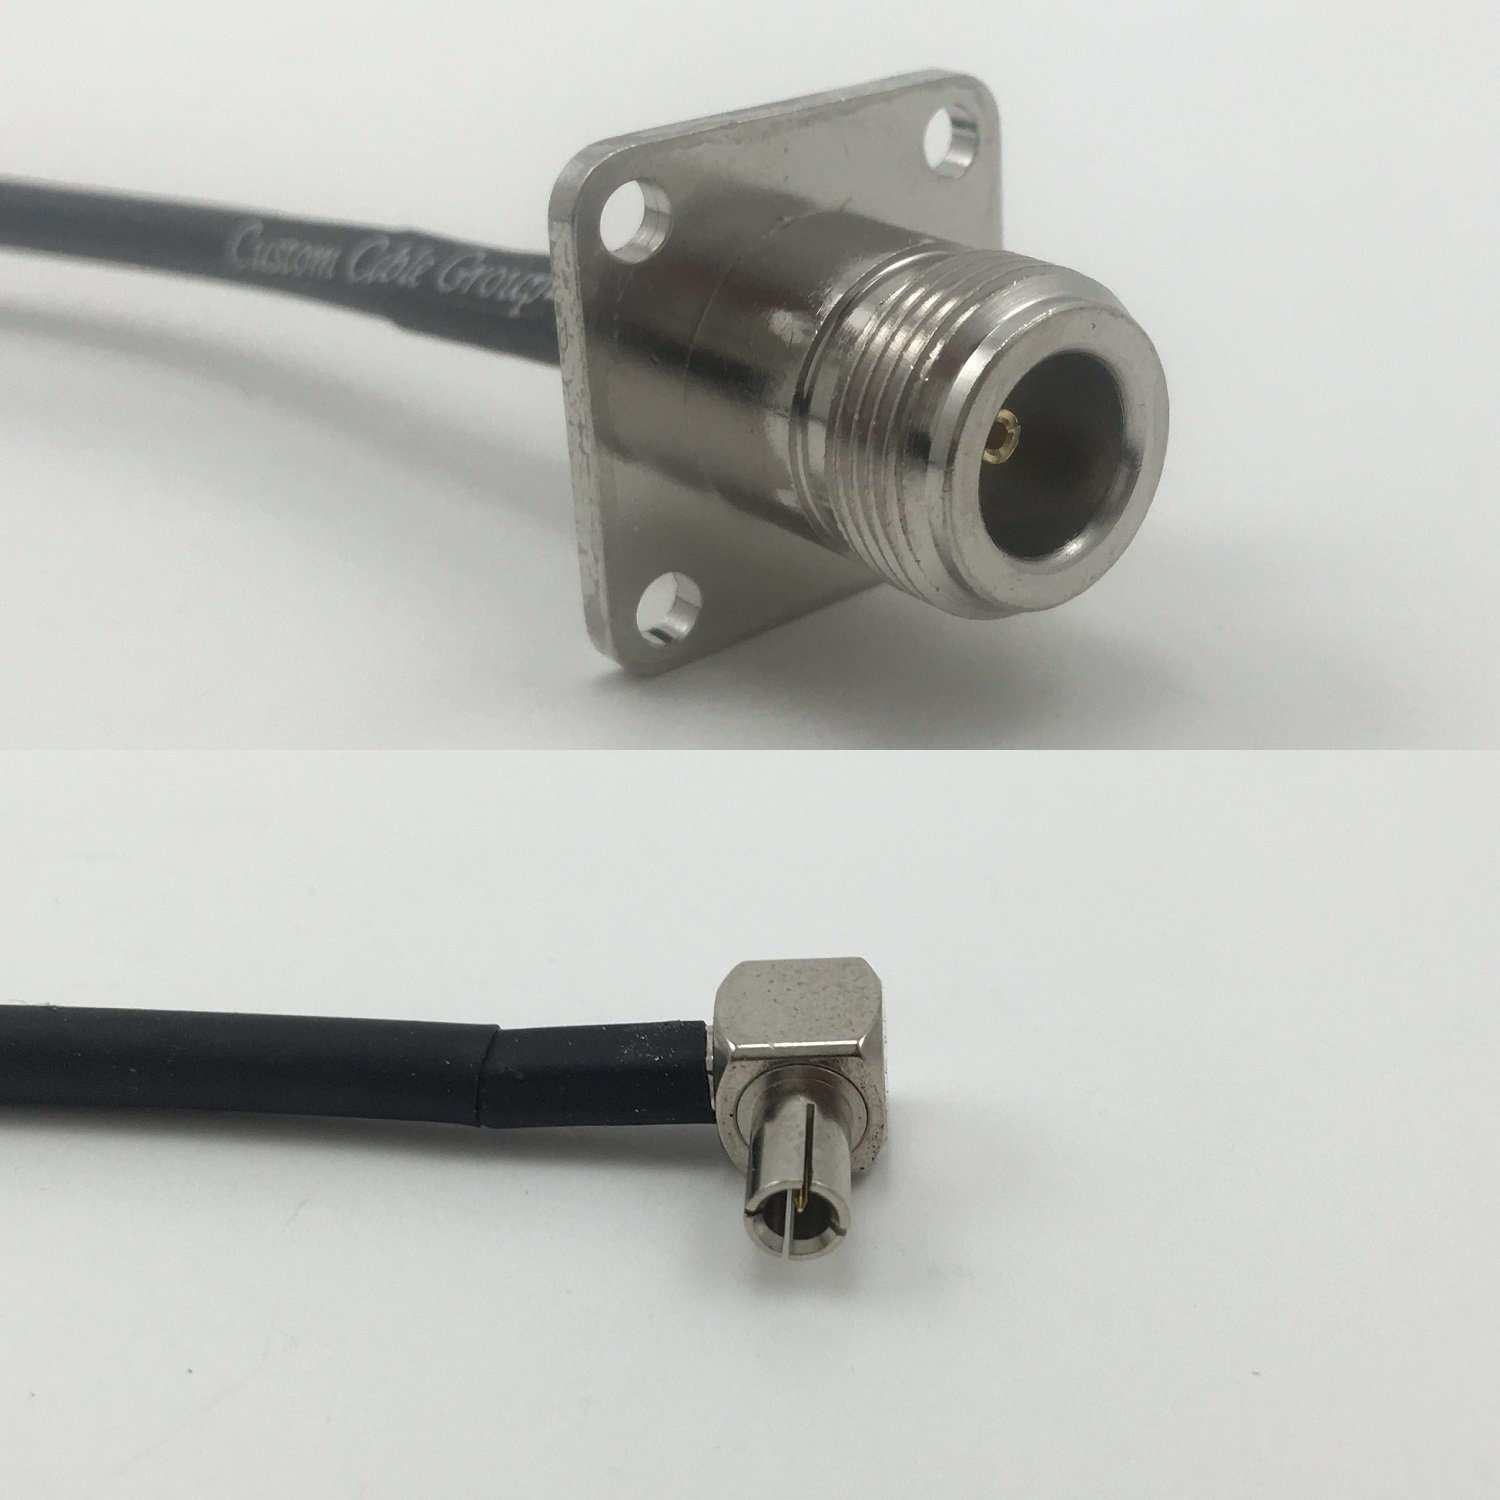 12 inch RGU178 N FLANGE FEMALE to TS9 ANGLE MALE Pigtail Jumper RF coaxial cable 50ohm Quick USA Shipping